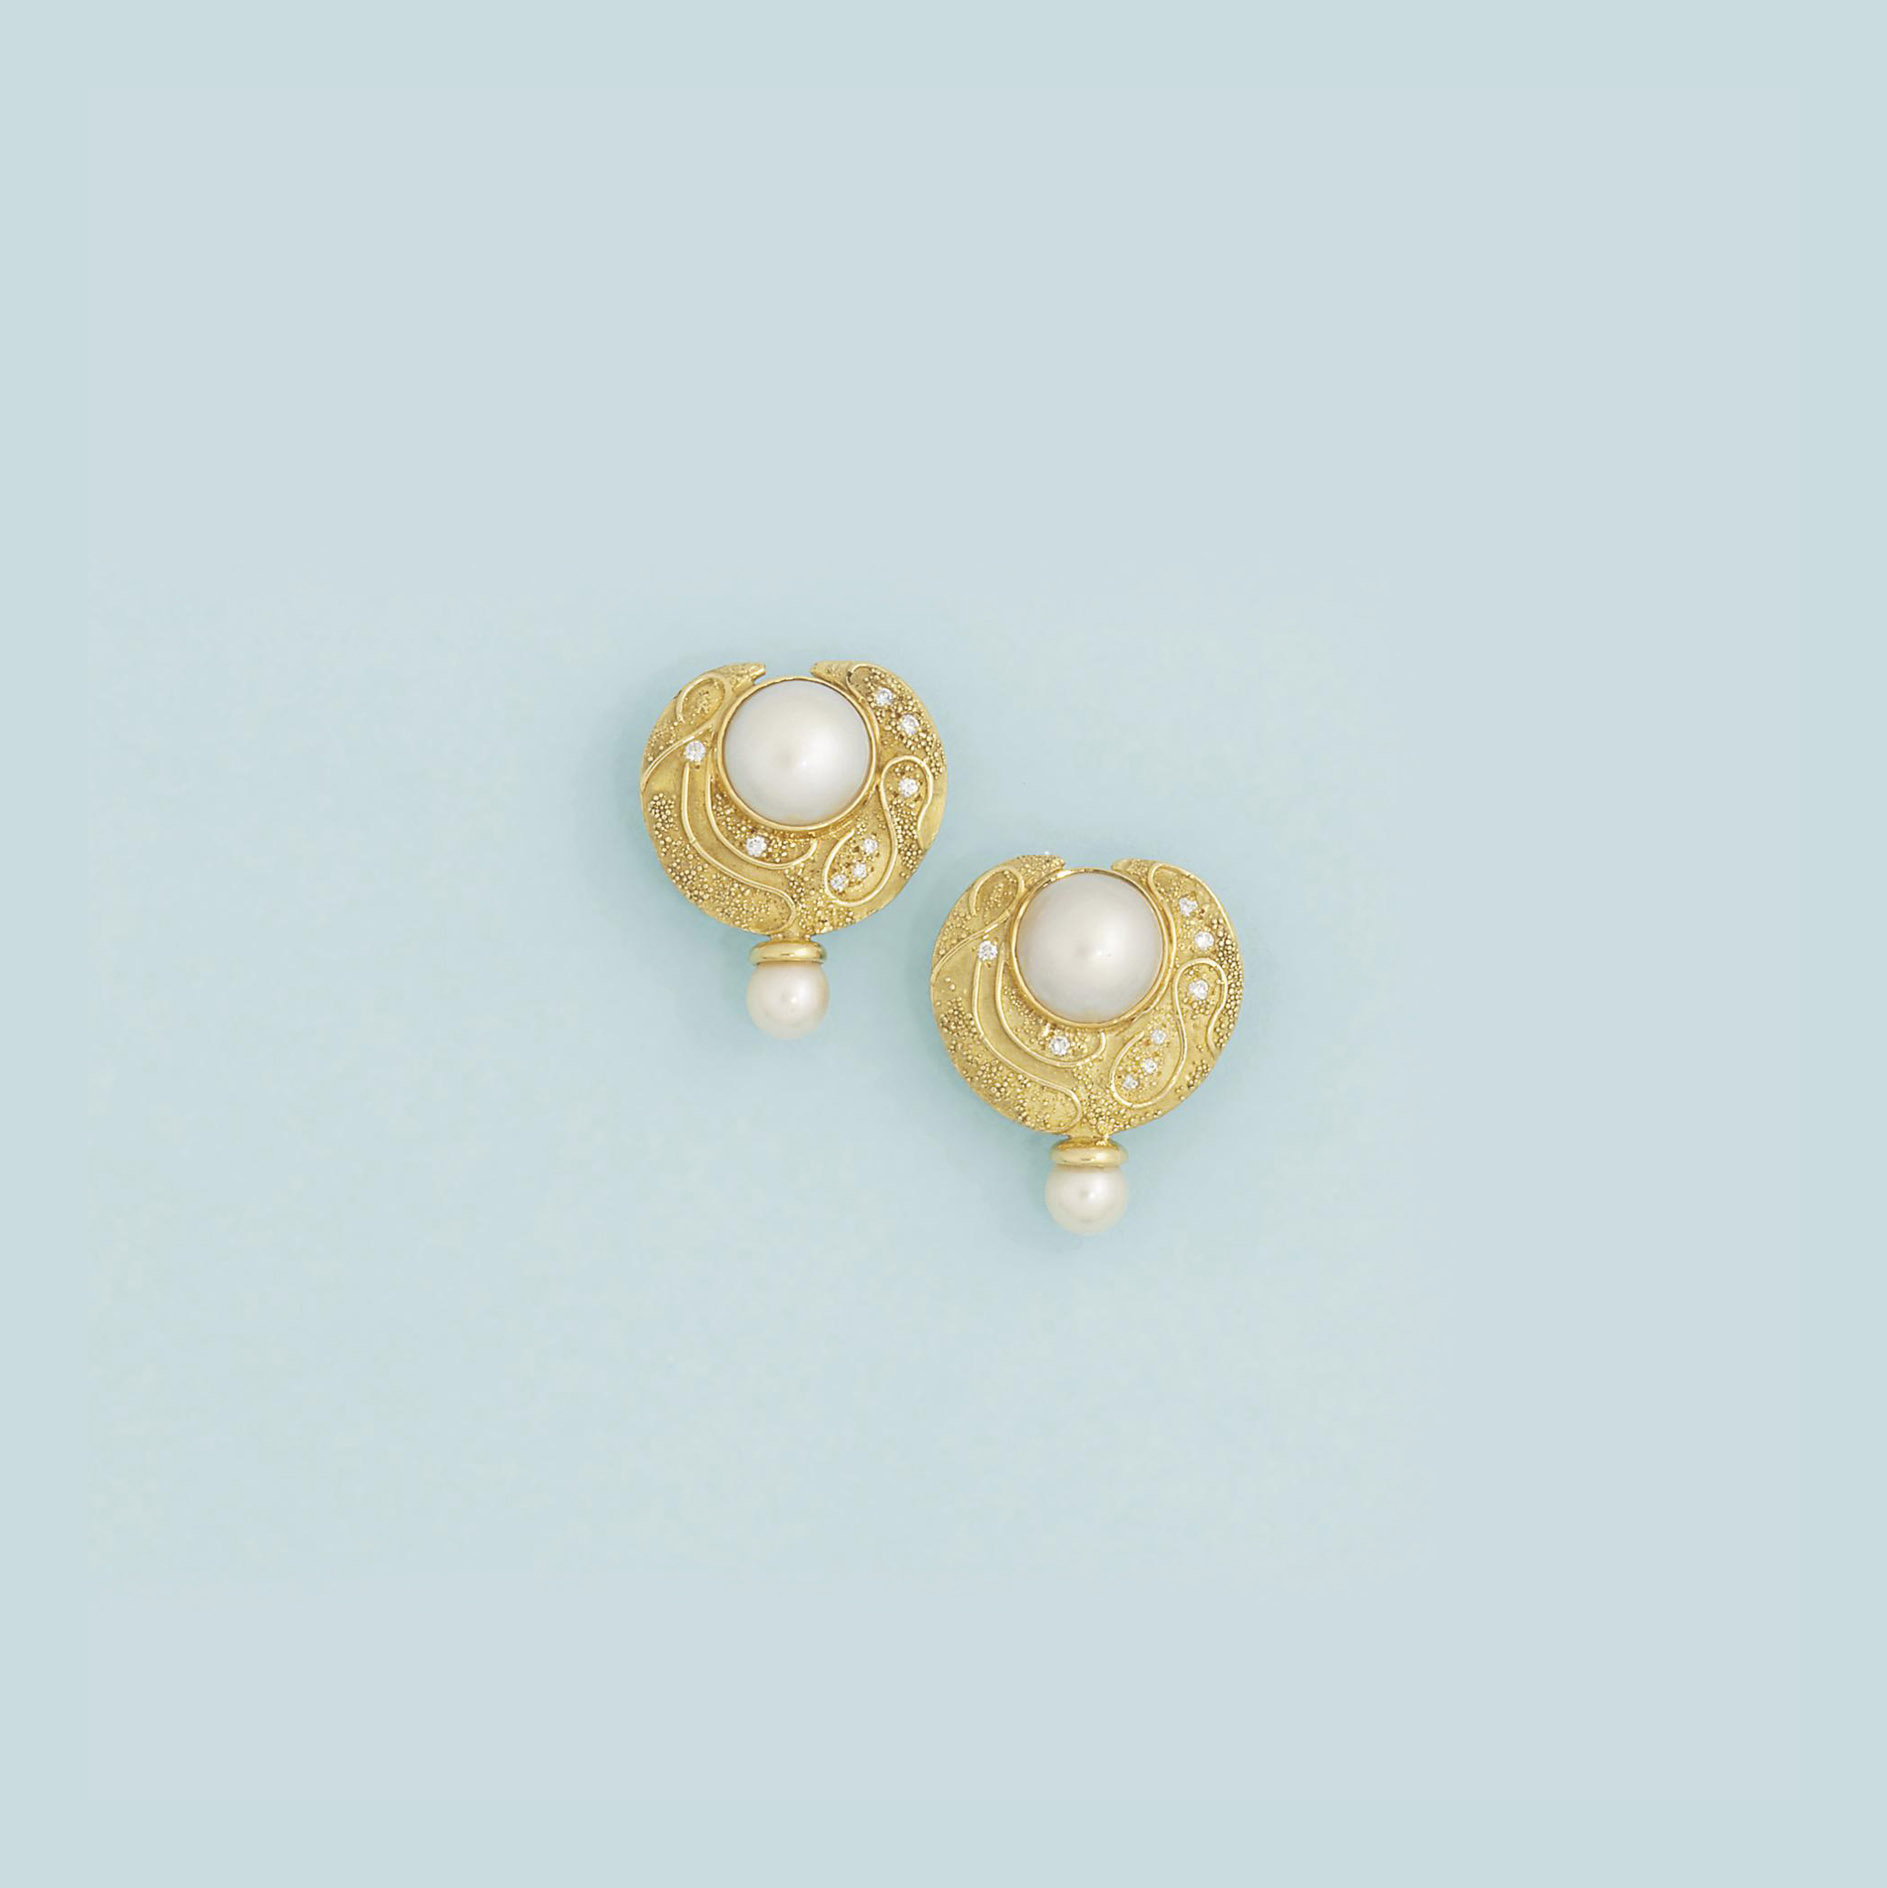 A pair of 18ct. gold cultured pearl and diamond earrings, by Elizabeth Gage